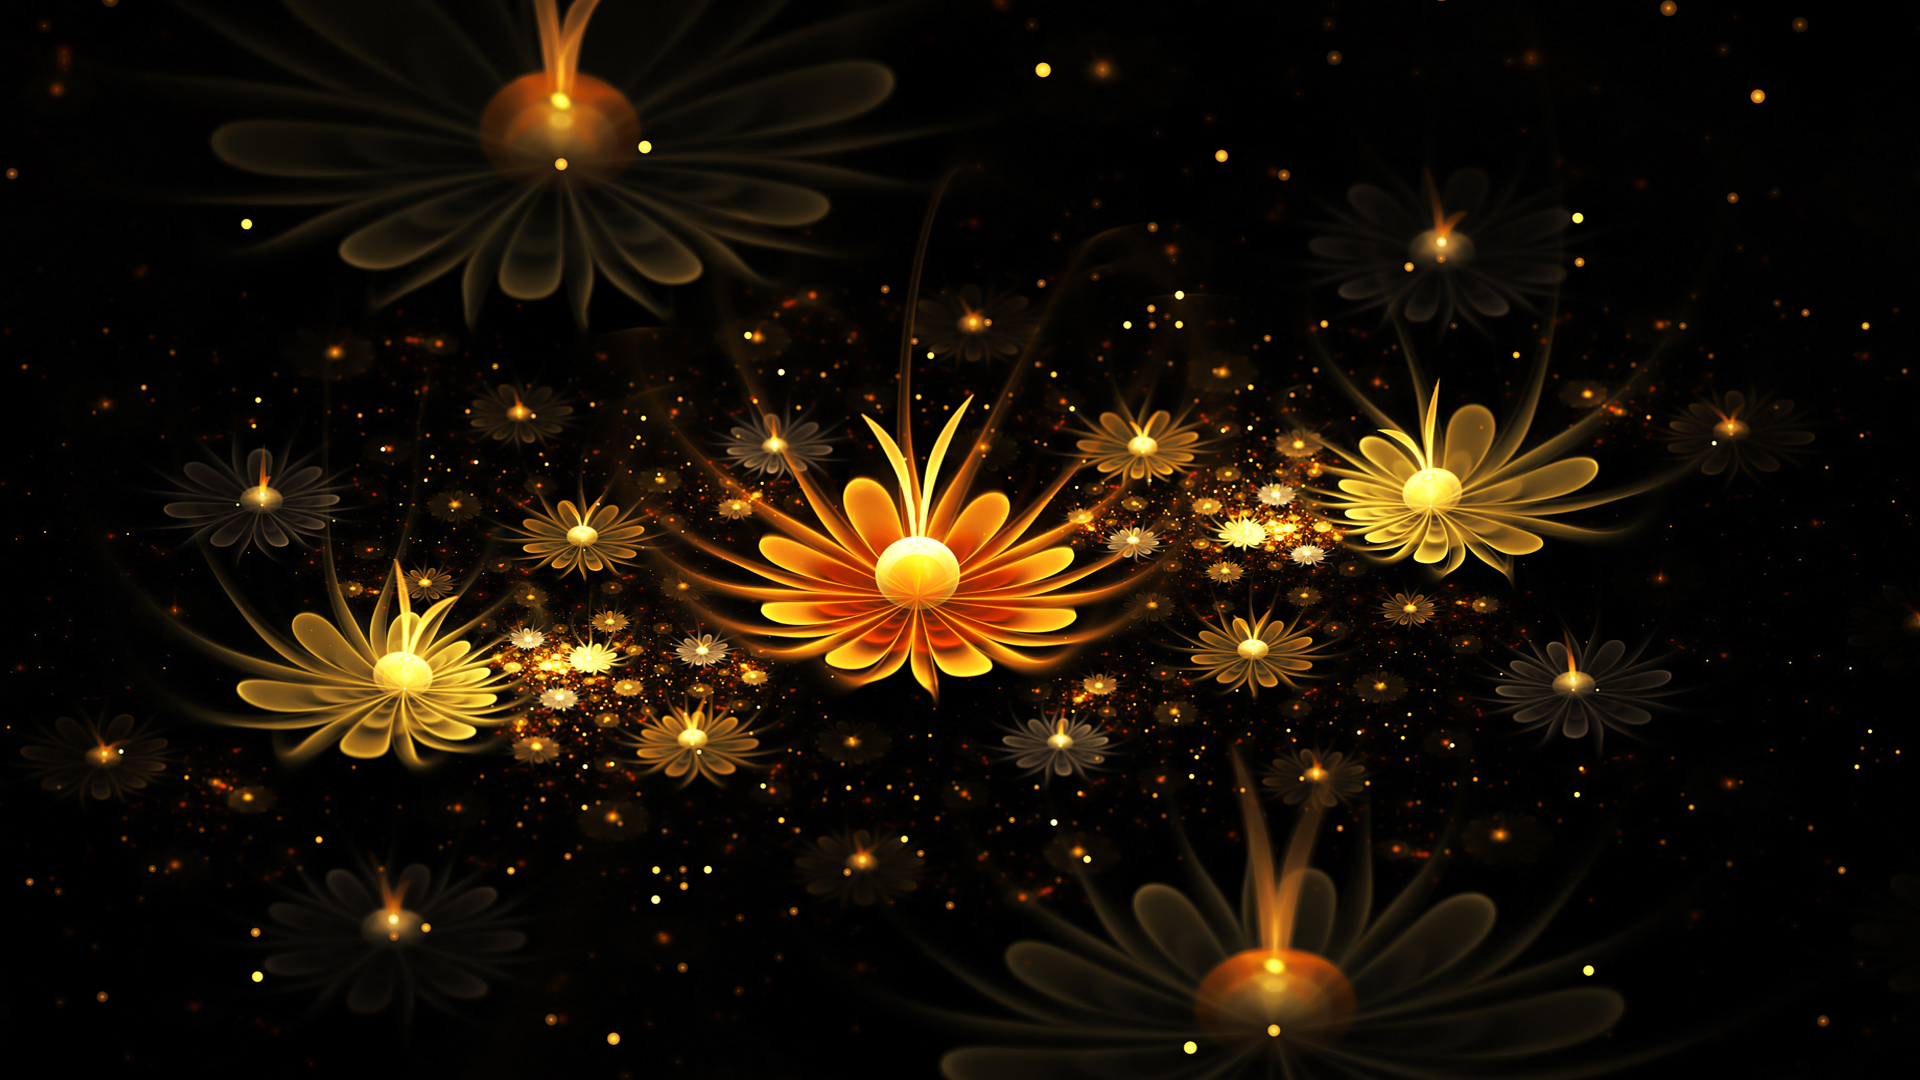 3D Flowers HD Wallpapers 4 3d Desktop HD   Apnatimepasscom 1920x1080